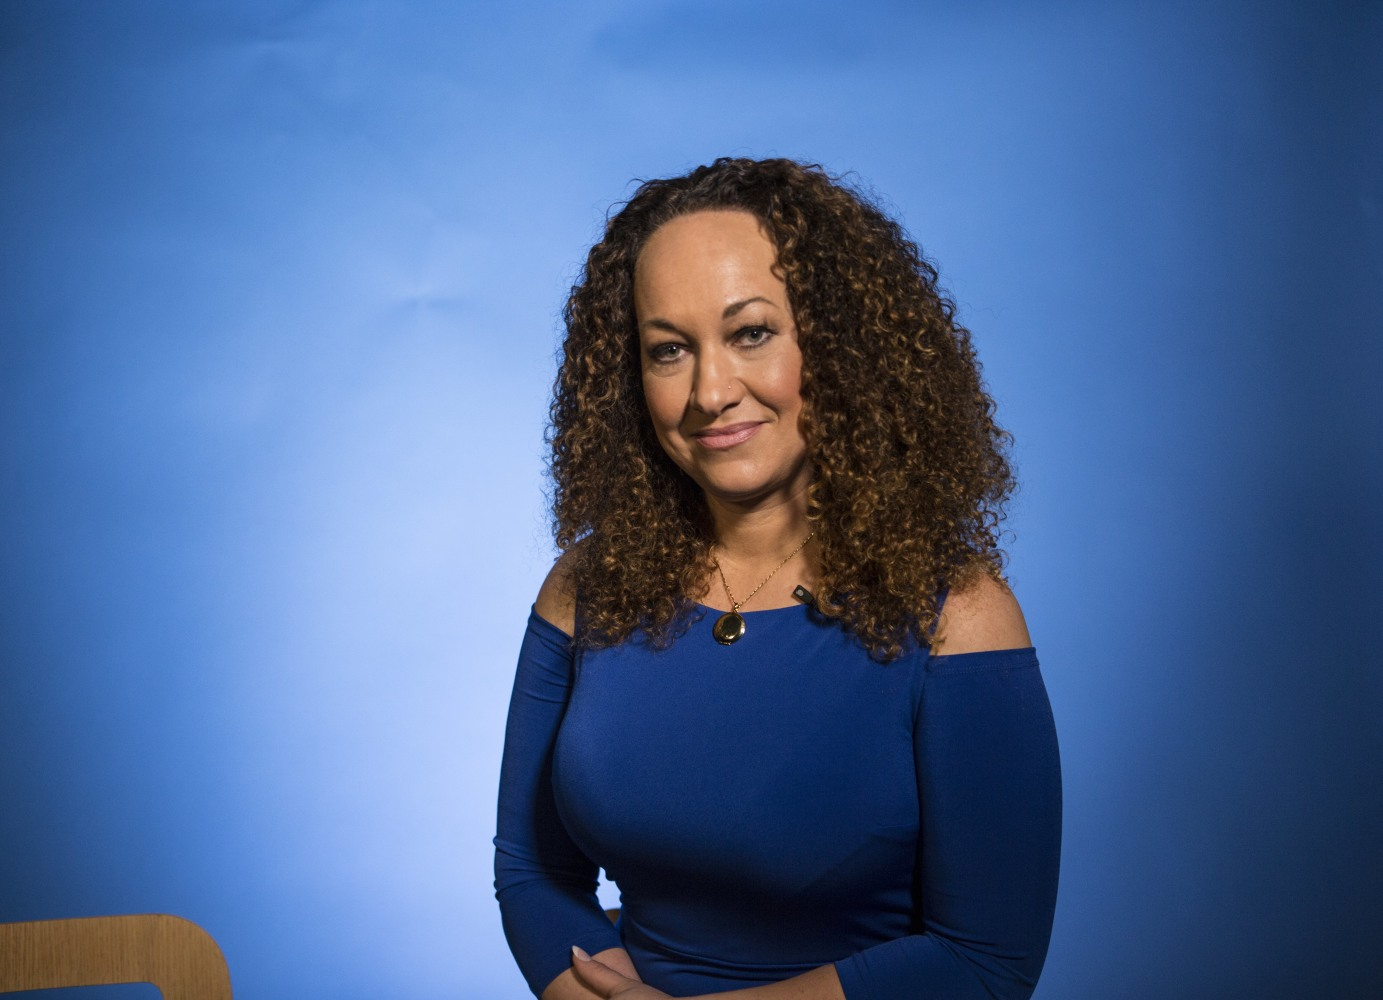 rachel dolezal pictures - photo #26